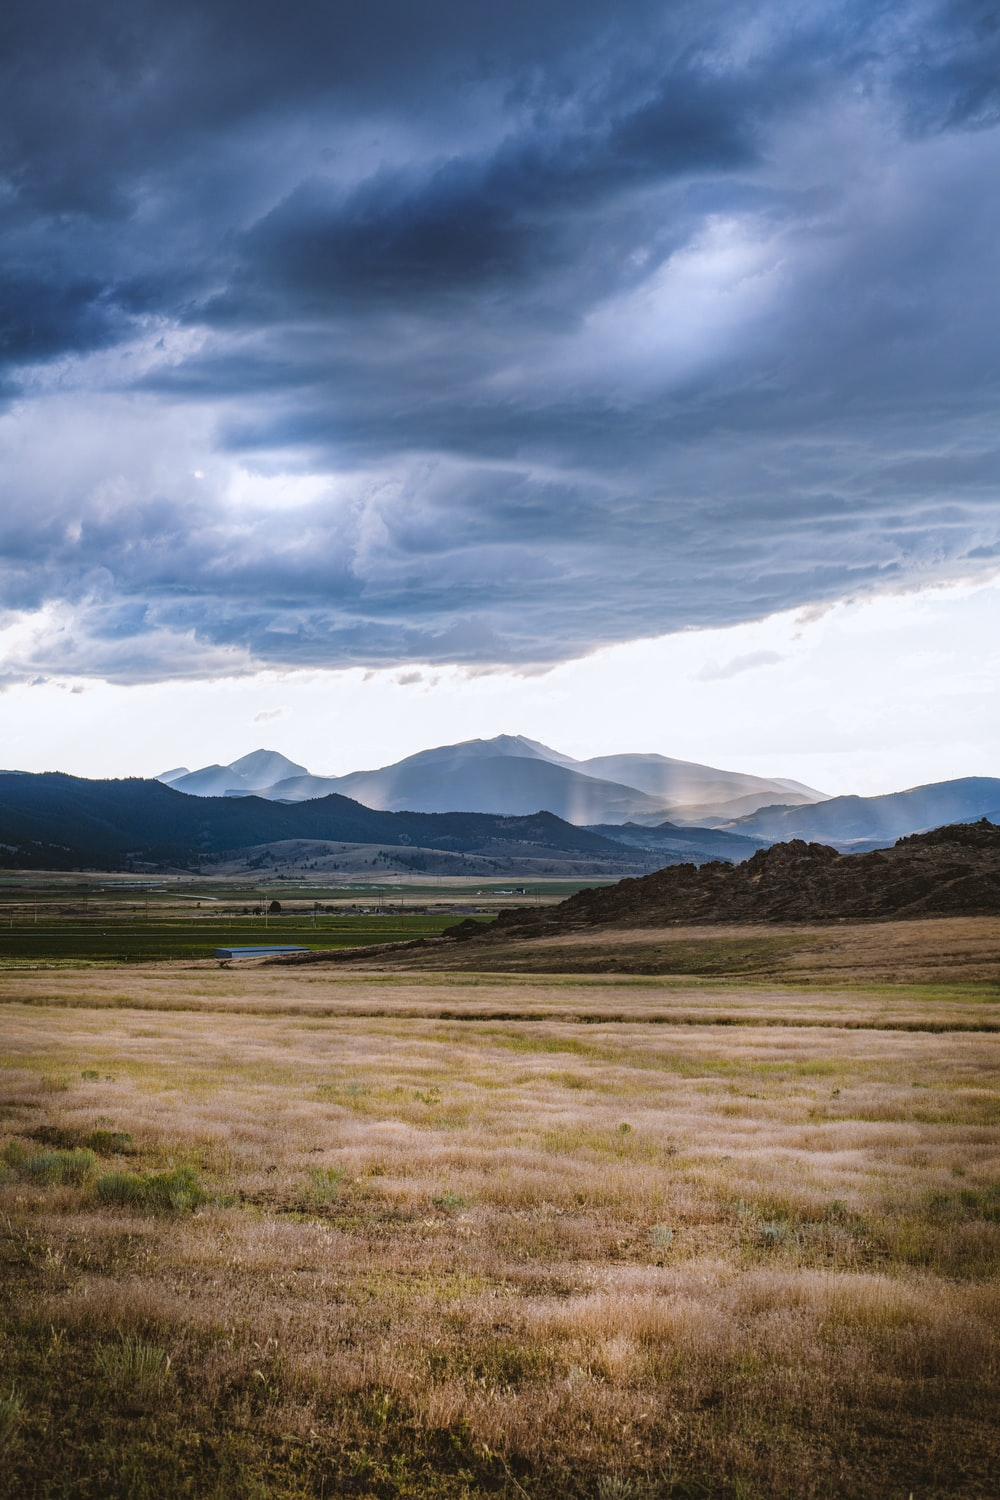 brown grass field near mountains under white clouds and blue sky during daytime